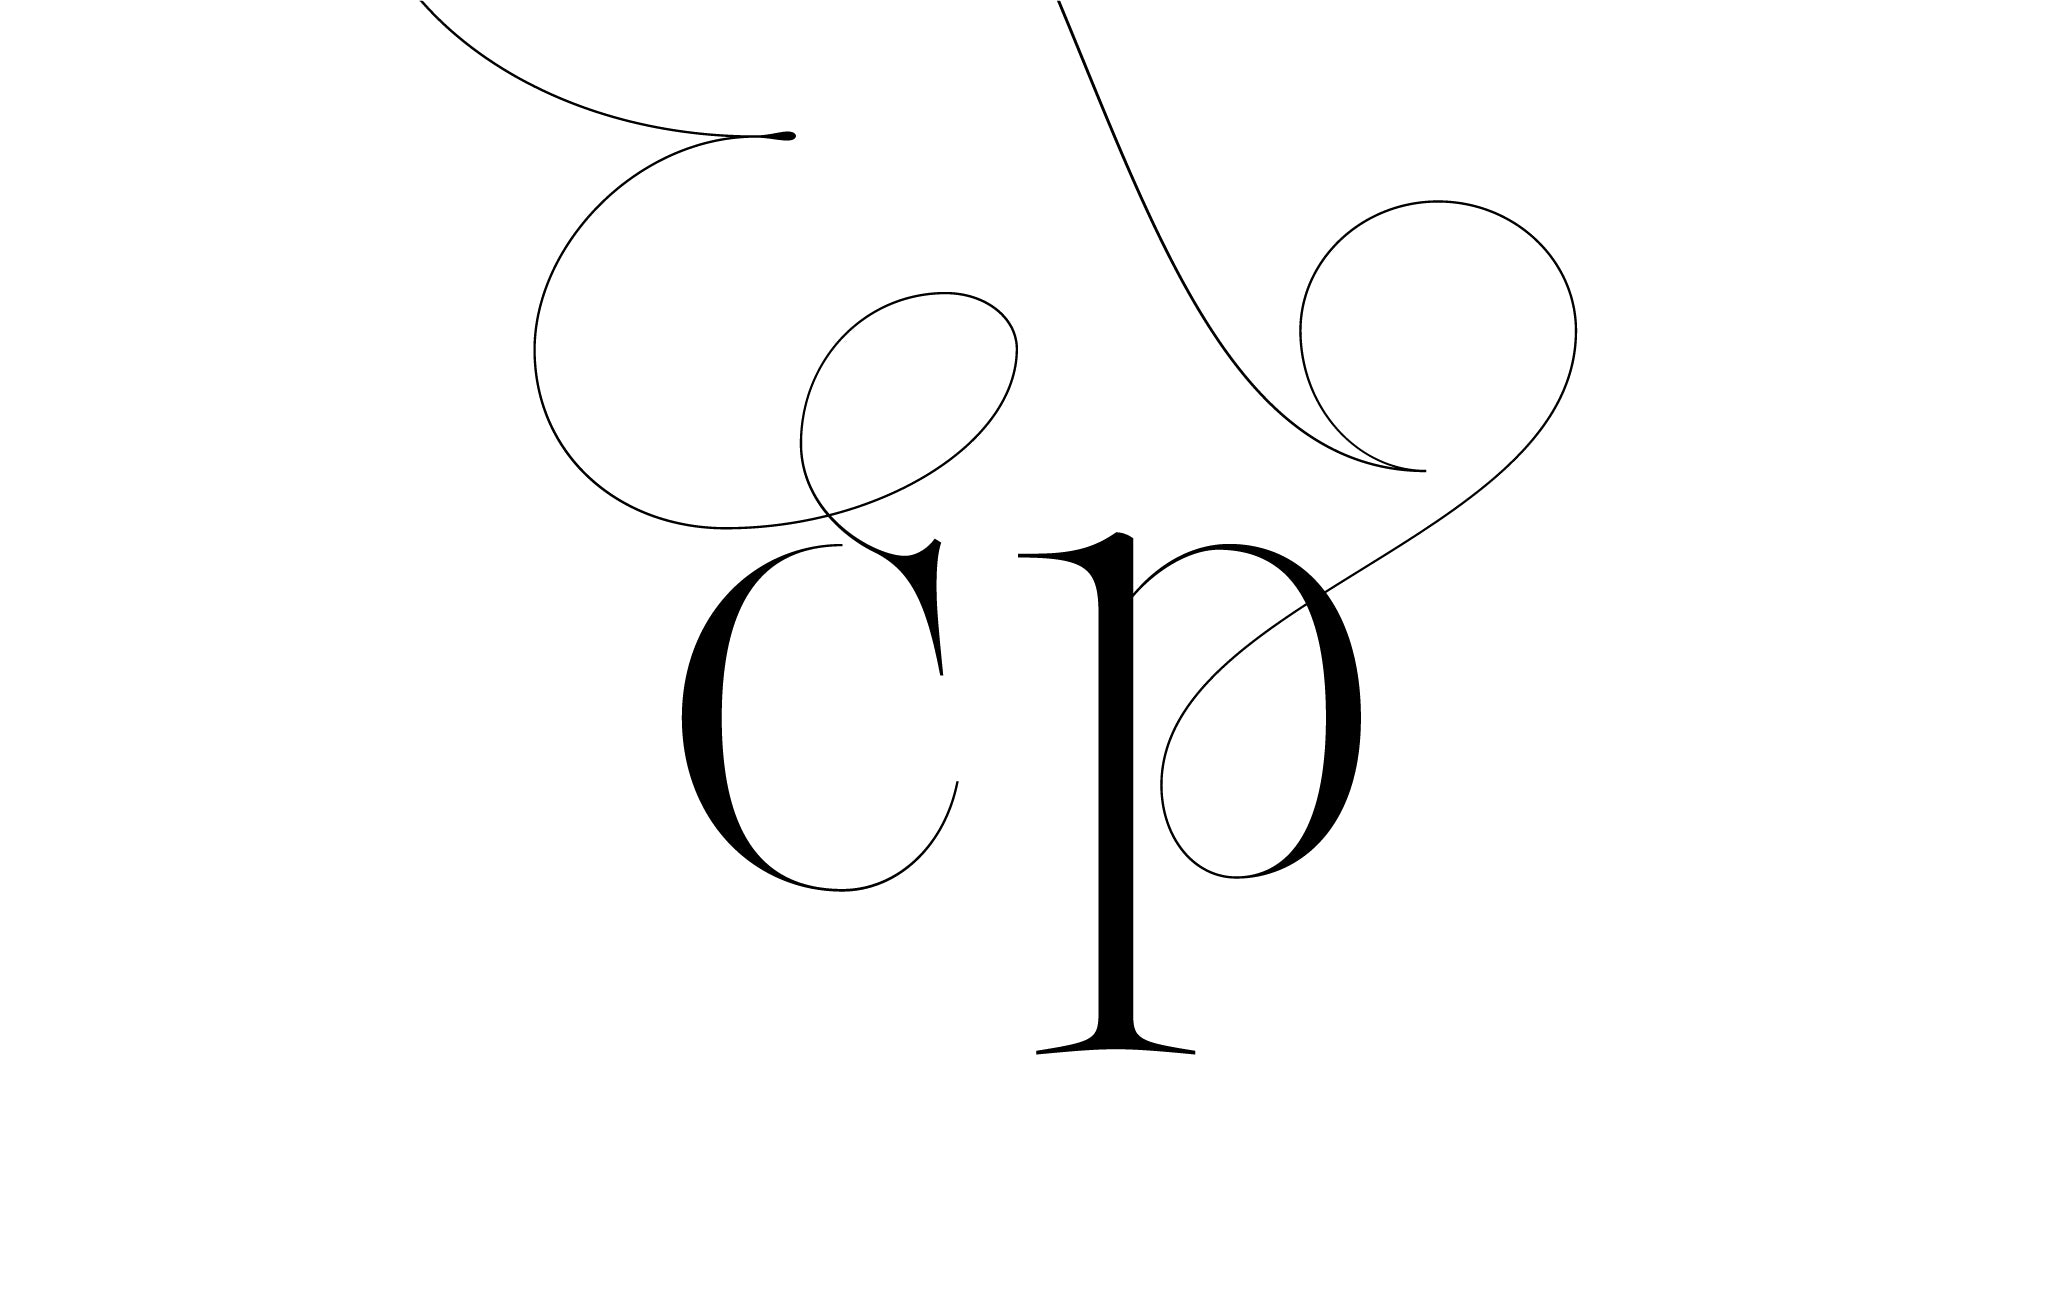 Lingerie XO Sexy Ligatures by Moshik Nadav Typography - cp